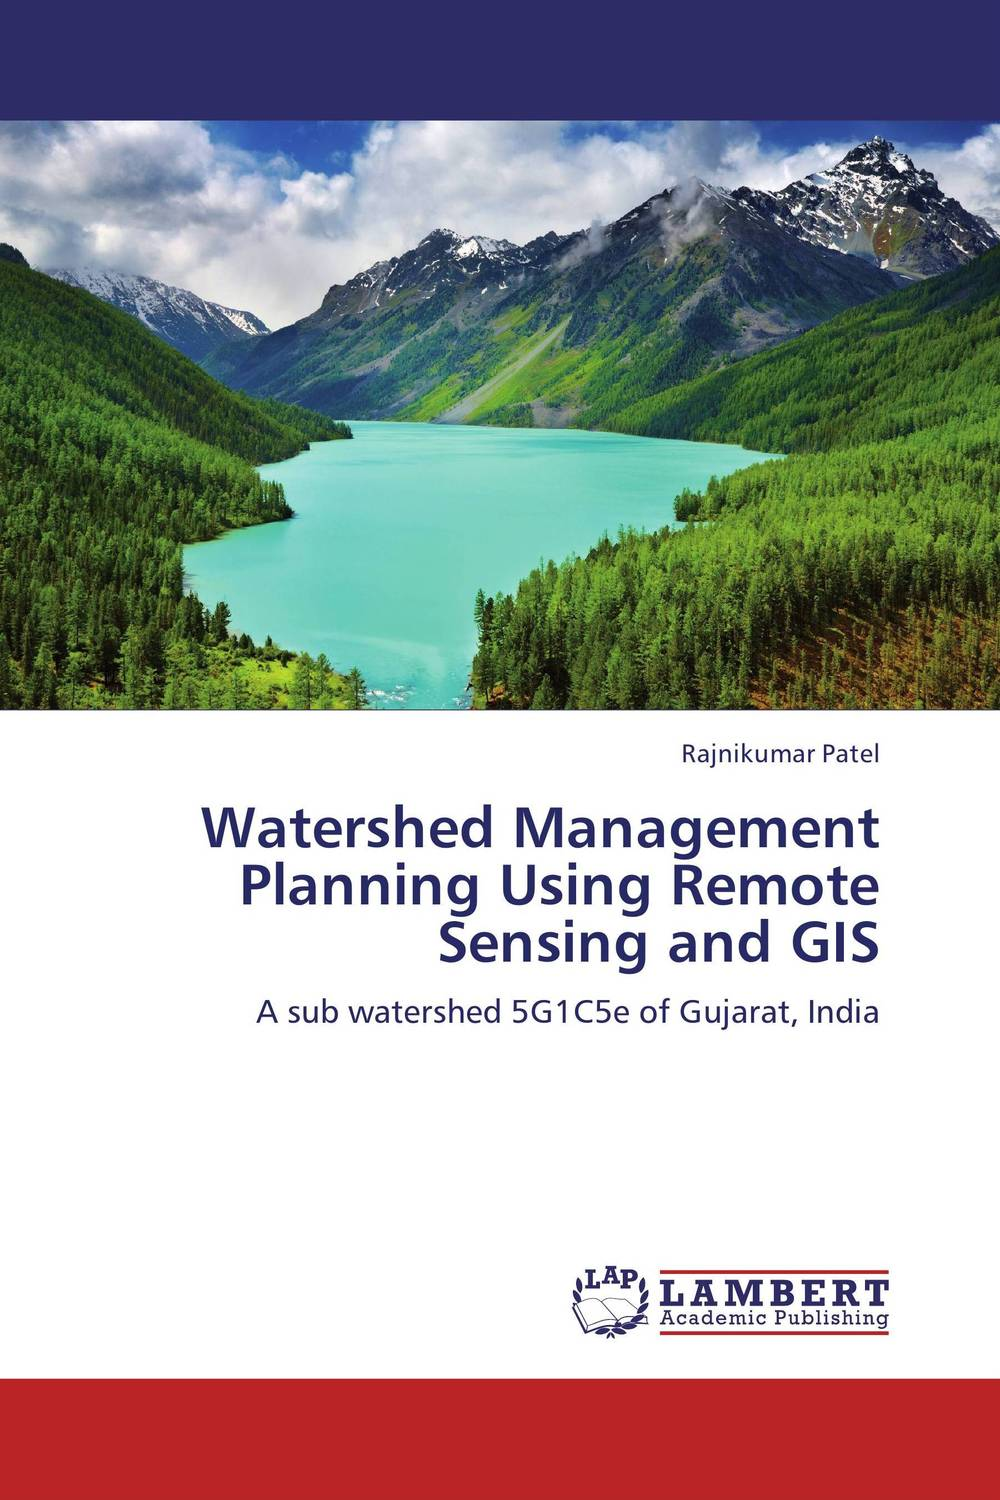 купить Watershed Management Planning Using Remote Sensing and GIS недорого